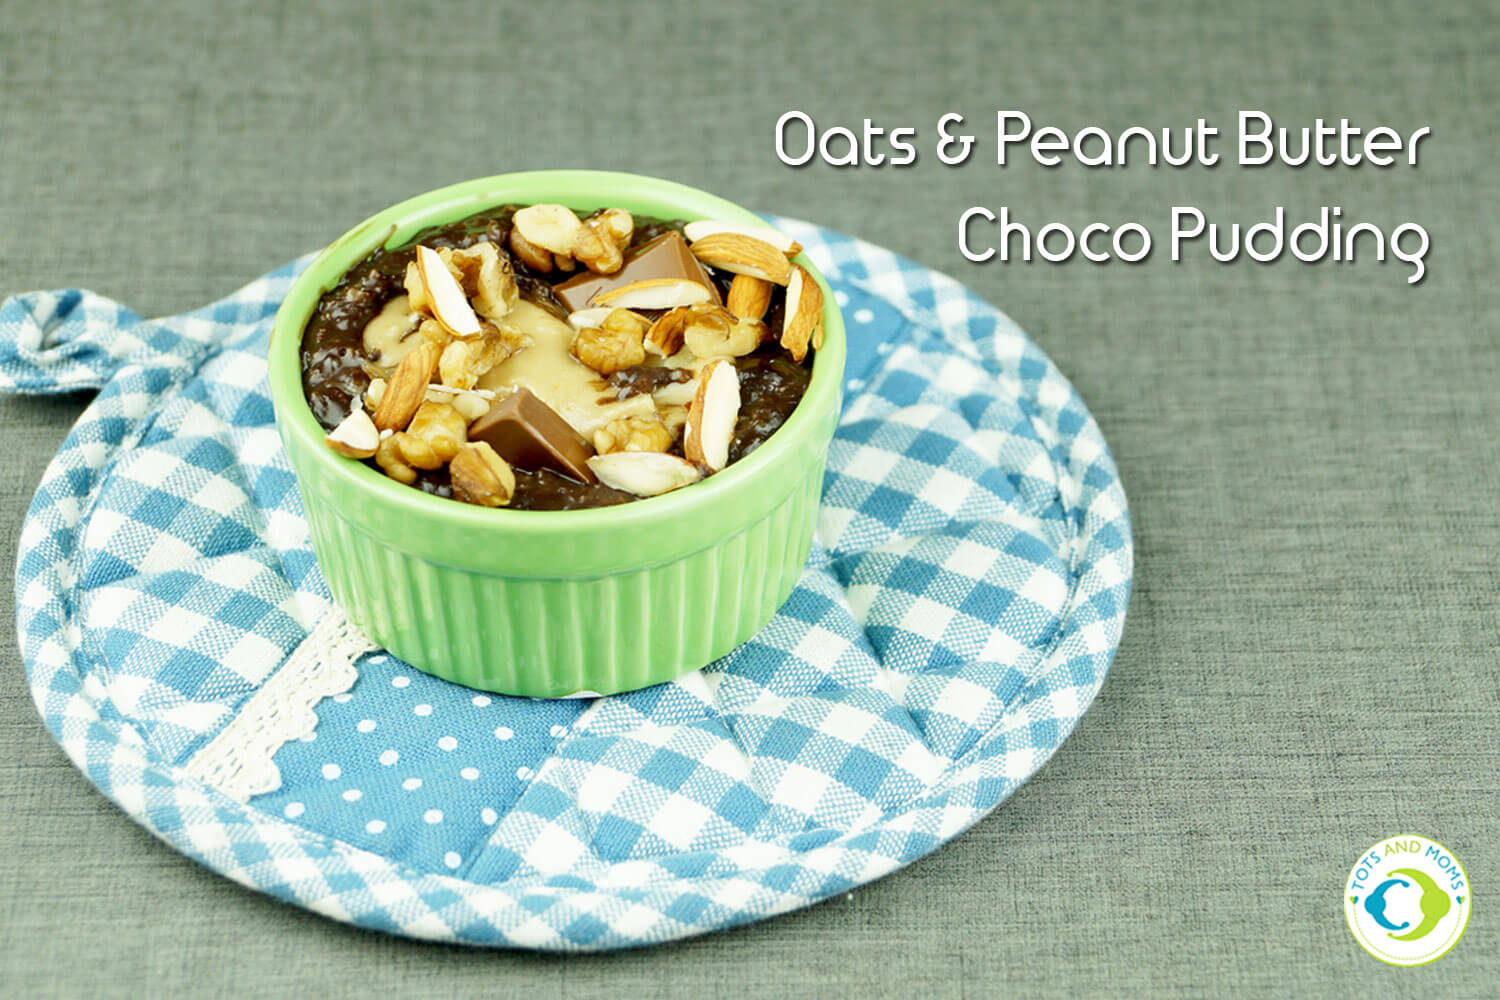 Oats & Peanut Butter Chocolate Pudding Instant Dessert for kids